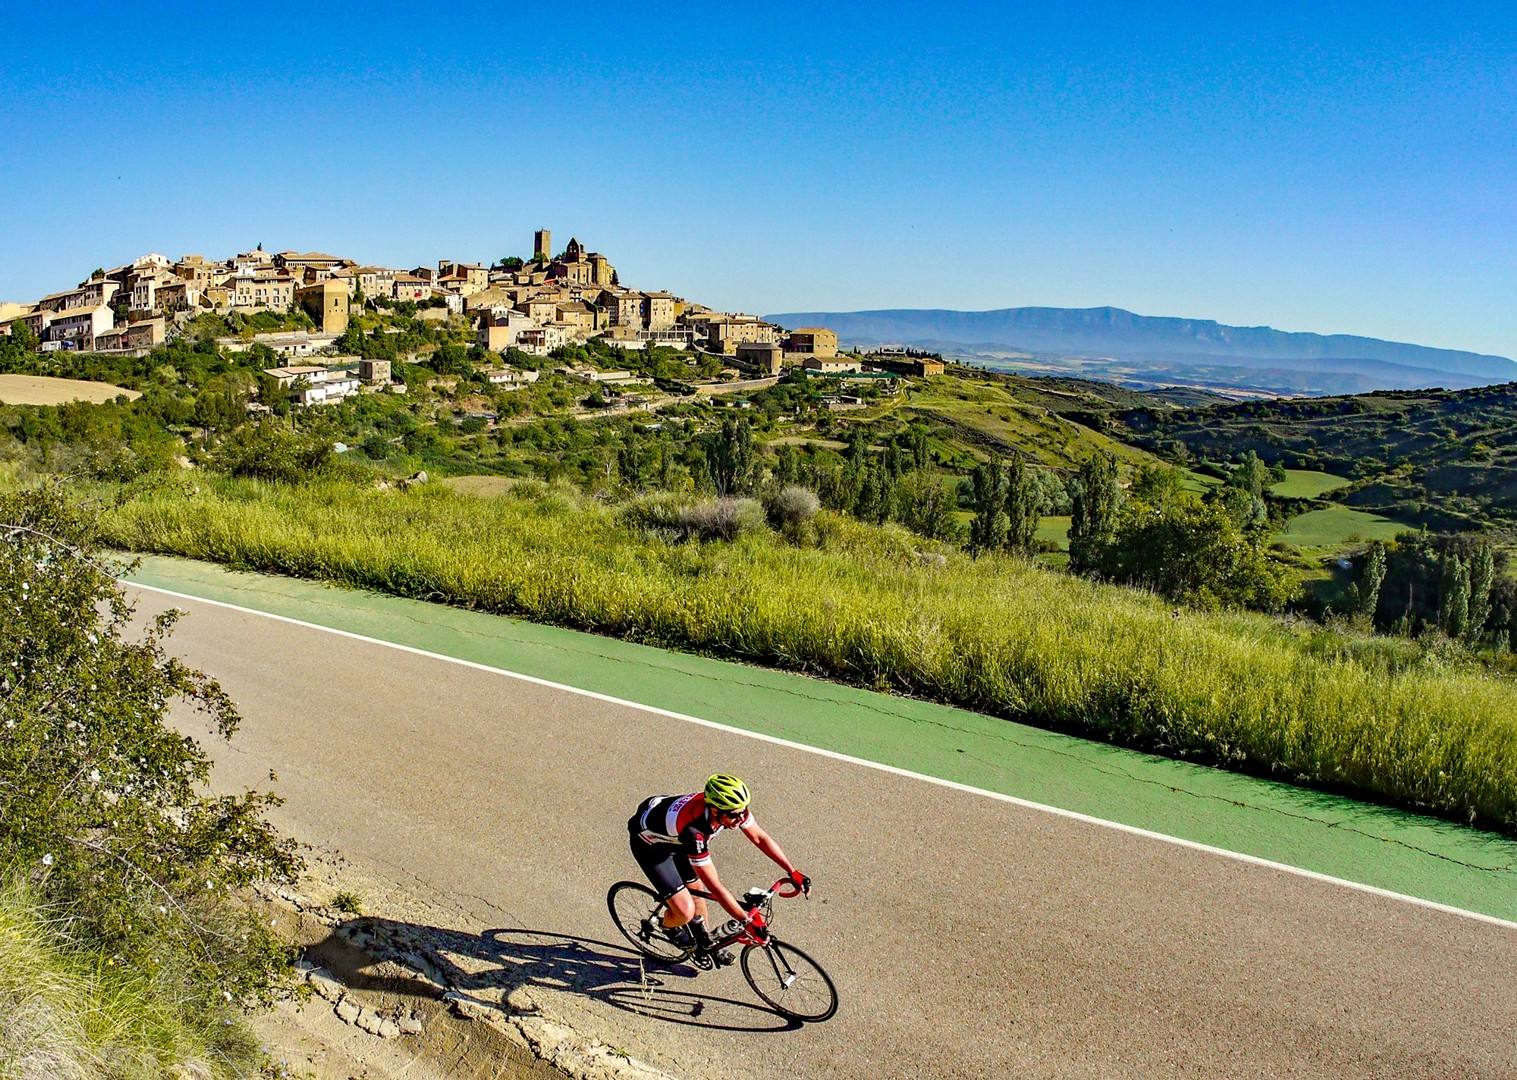 guided-road-cycling-holiday-bilbao-to-barcelona-riding-in-sos-del-ray.jpg - Northern Spain - Bilbao to Barcelona - Guided Road Cycling Holiday - Road Cycling